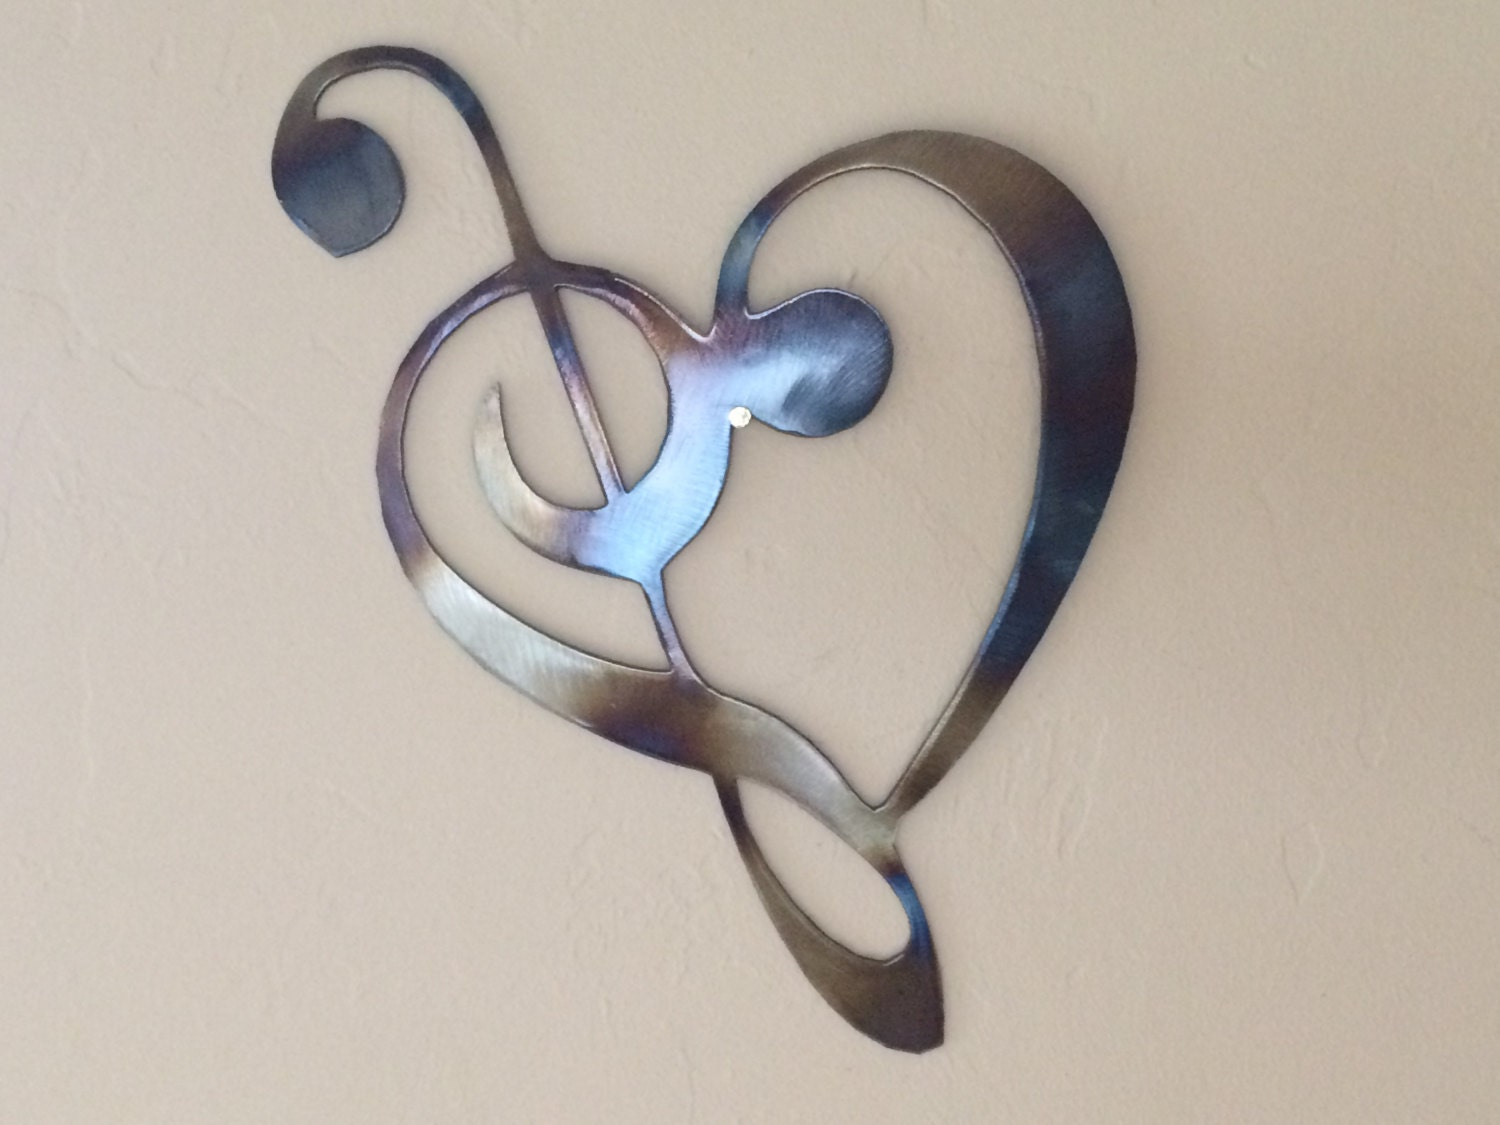 Wall Decorations Music Notes : Heart music notes metal wall art decor